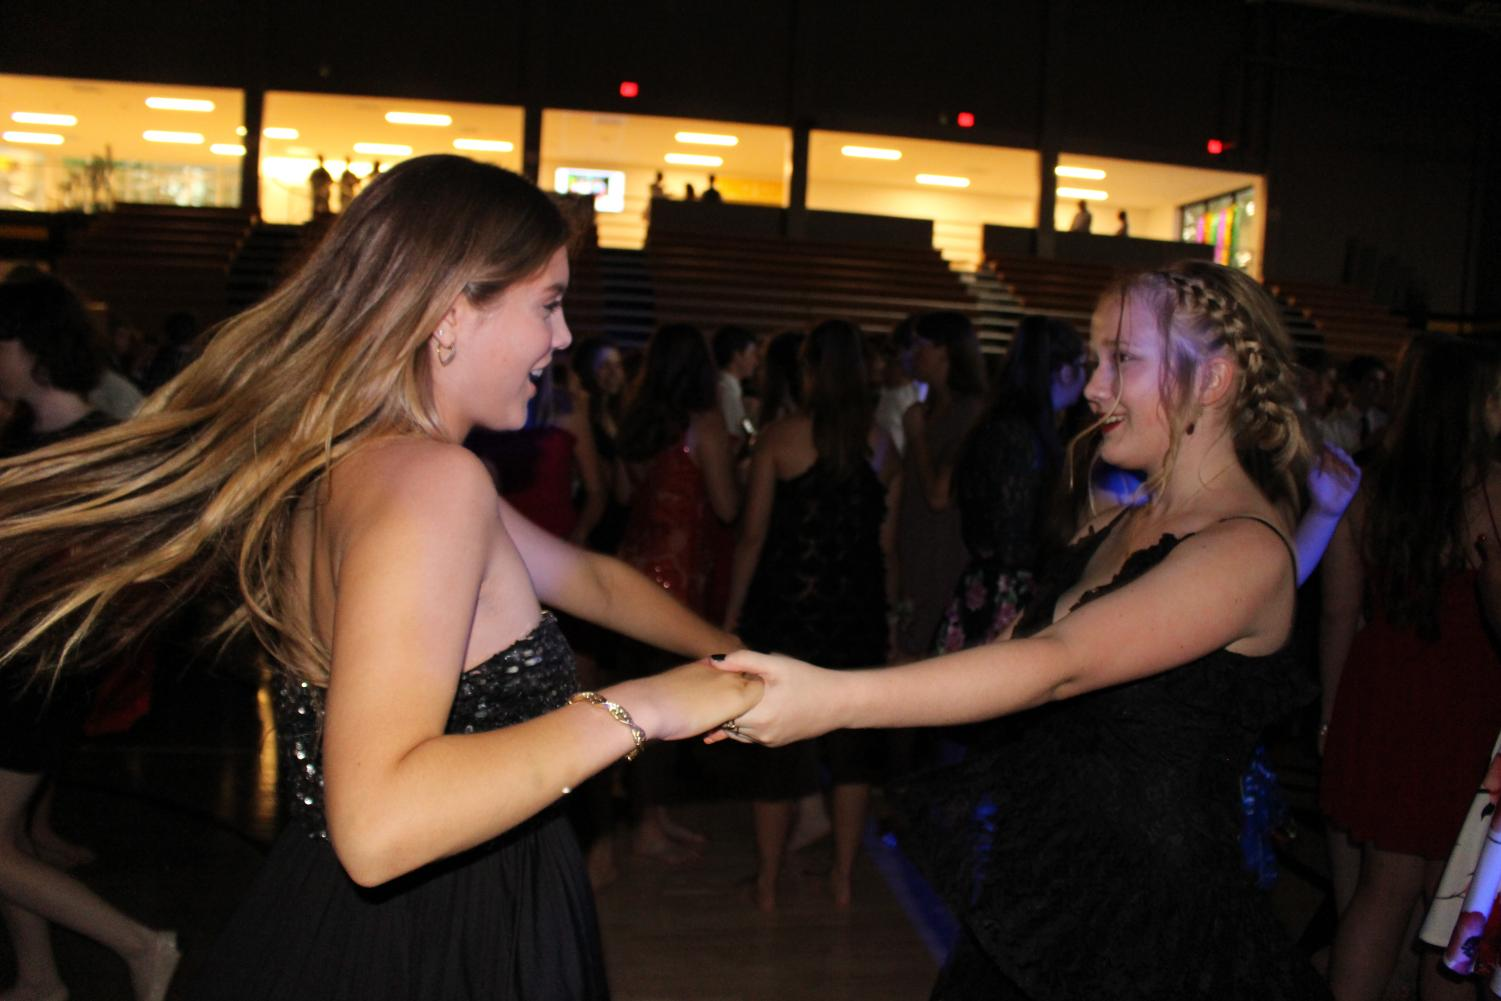 Sophomores Maggie Dodderidge and Mady Mudd dance together at the Teresian dance Sept. 22. photo by Maddie Loehr